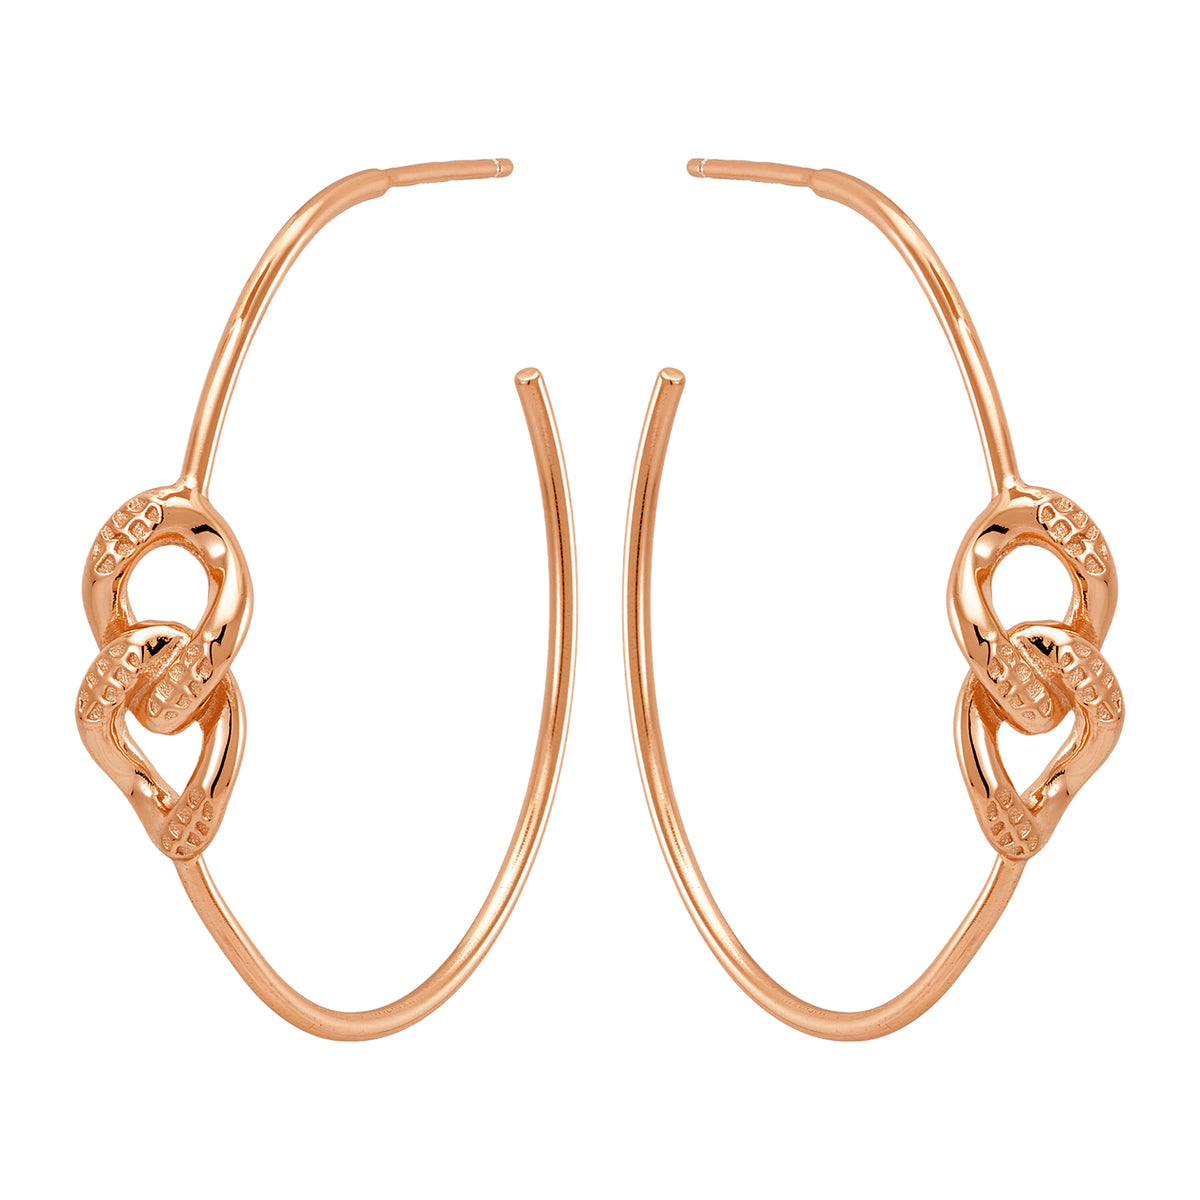 Bellona | Bond Hoops | 925 Silver | Rose Gold Plated